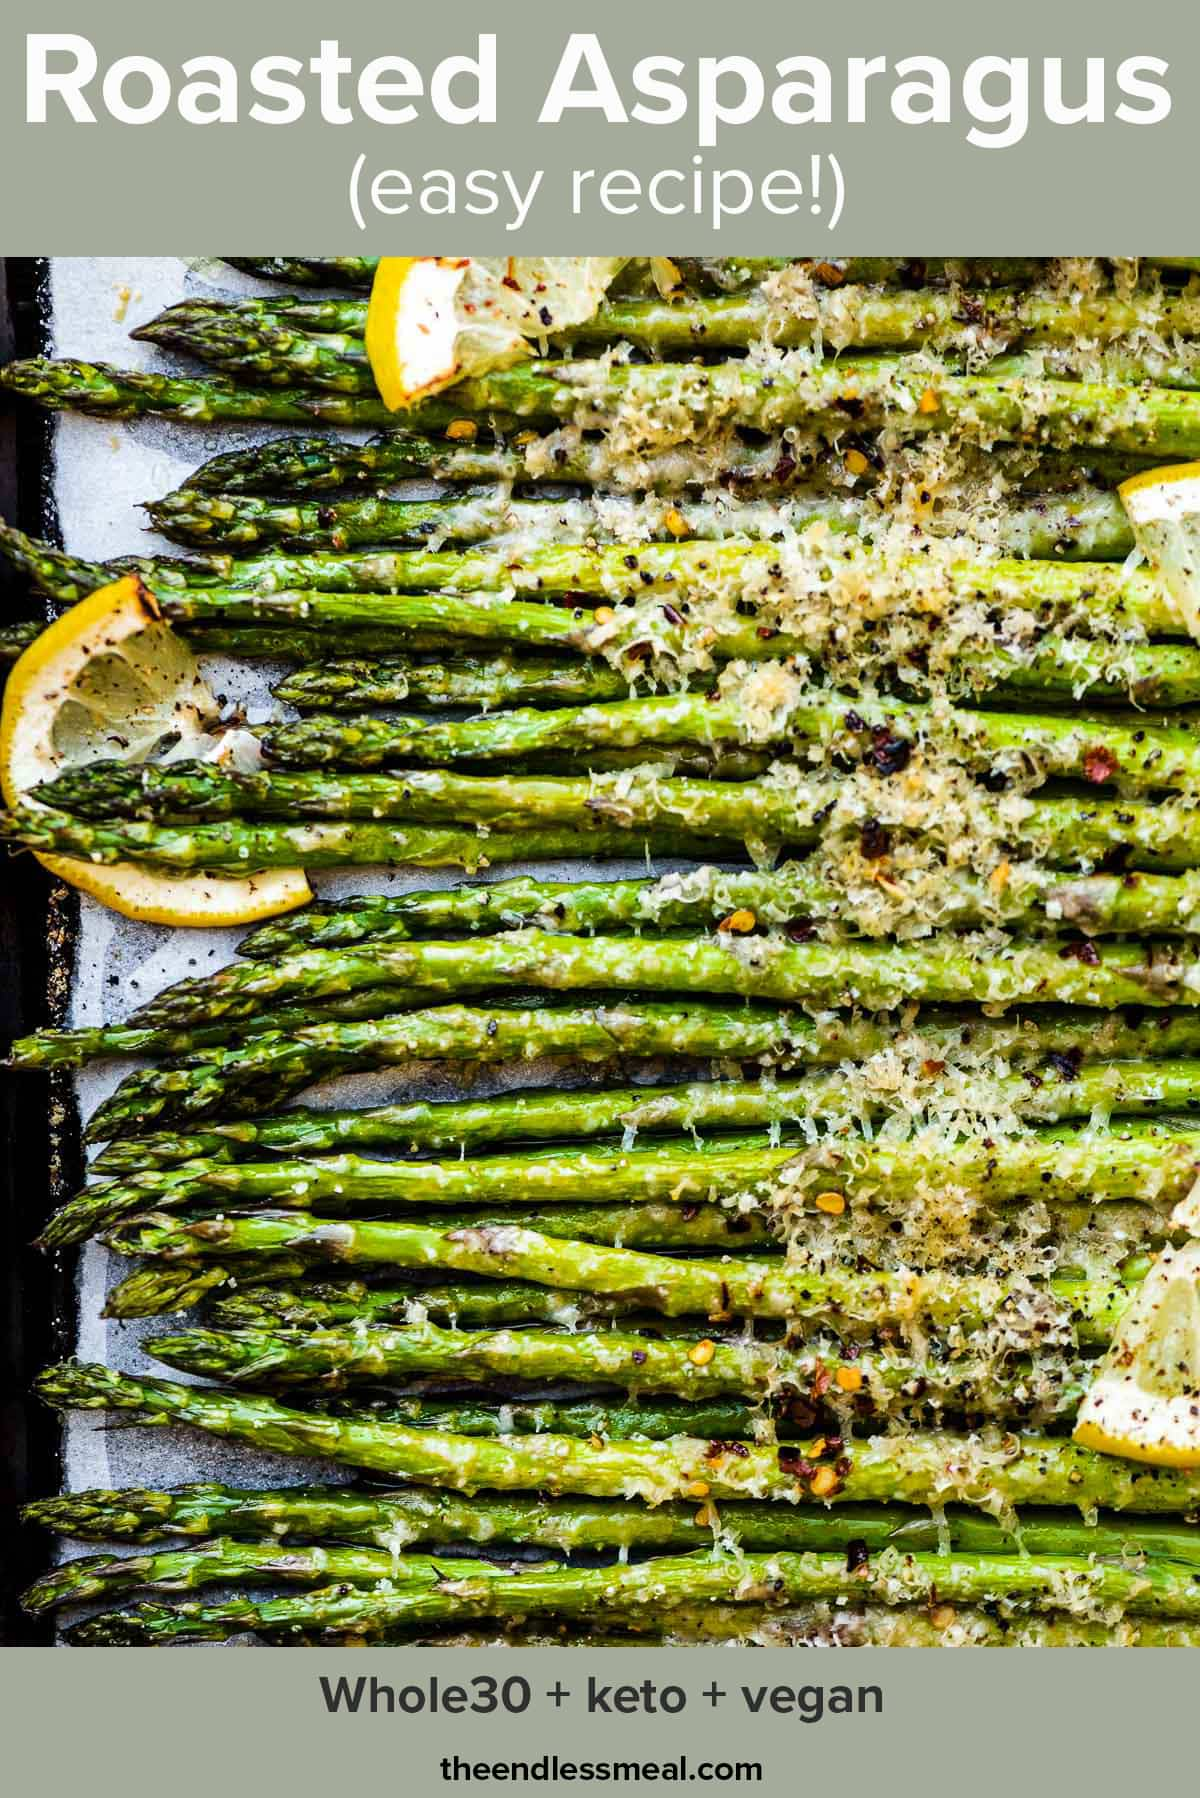 A baking sheet with roasted asparagus lined up on it and the recipe title on top of the picture.